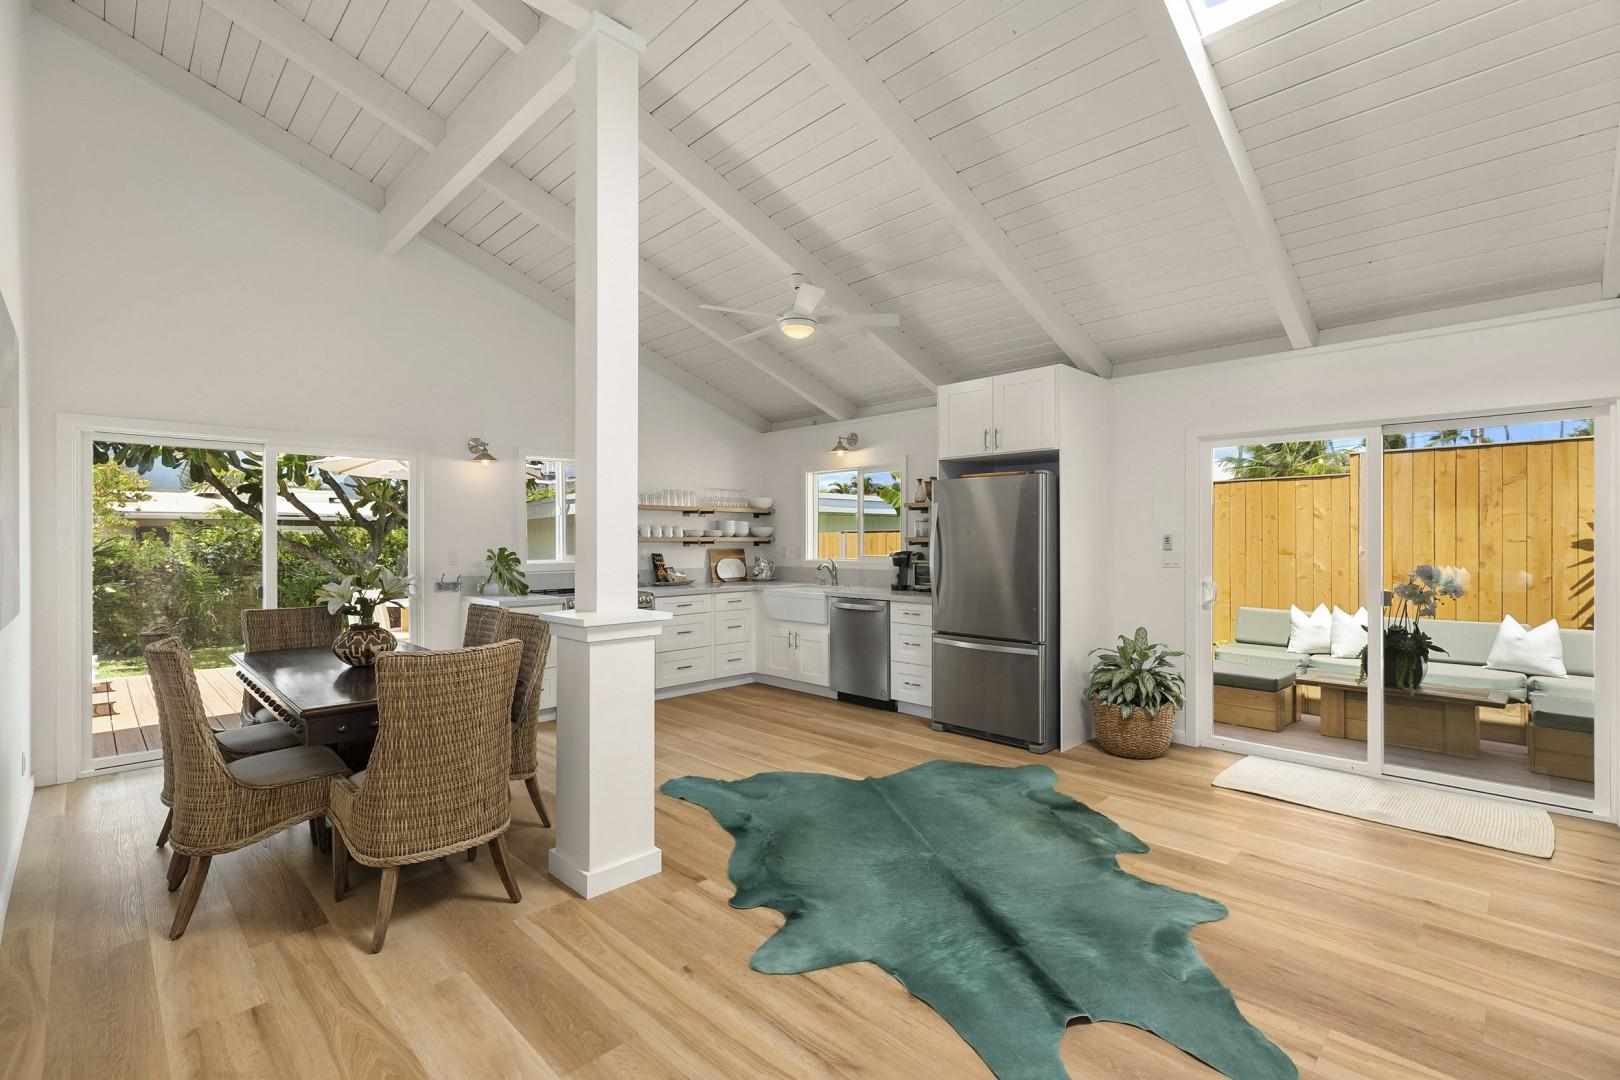 Open floor plan with Vaulted Ceilings and lots of natural light